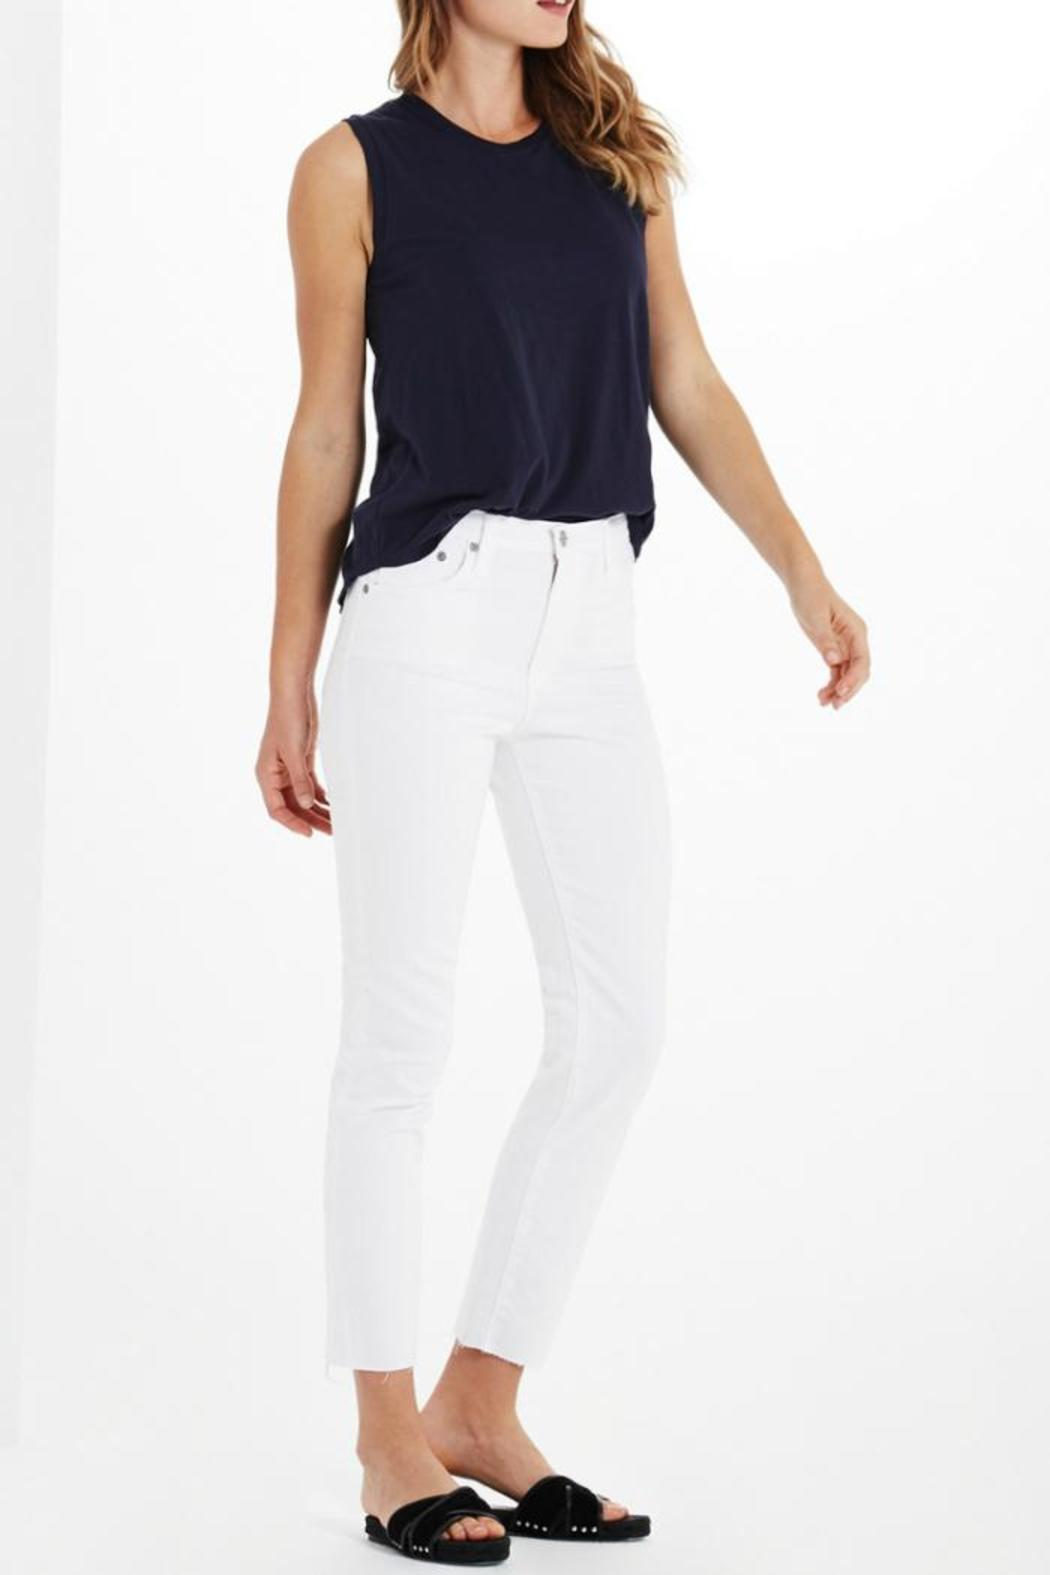 AG Jeans Isabelle White Pants - Front Full Image